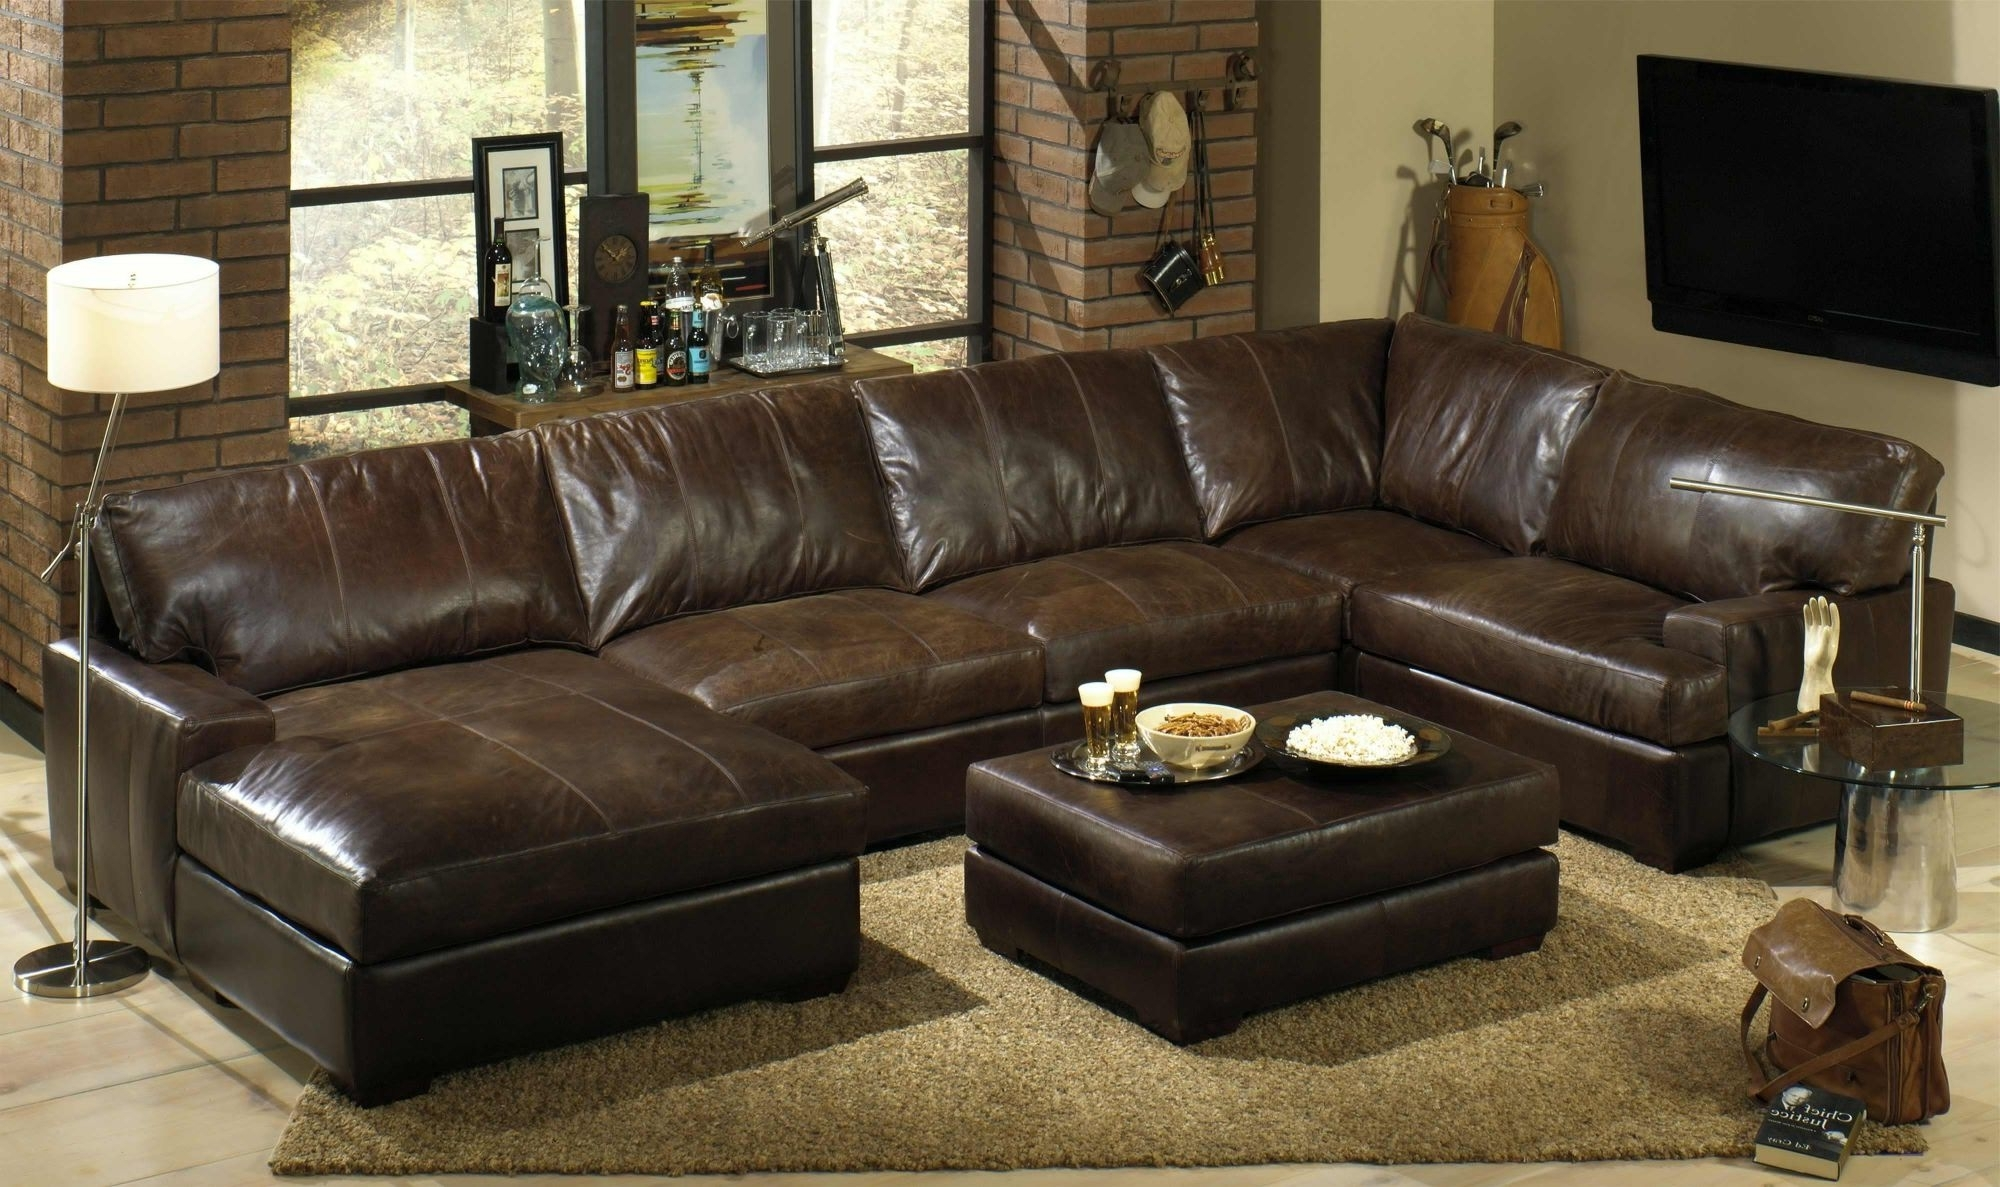 Newest Amazing Sectional Sofa Design Small Leather Chaise Pict Of With Pertaining To Sectional Sofas With Recliners For Small Spaces (View 5 of 20)